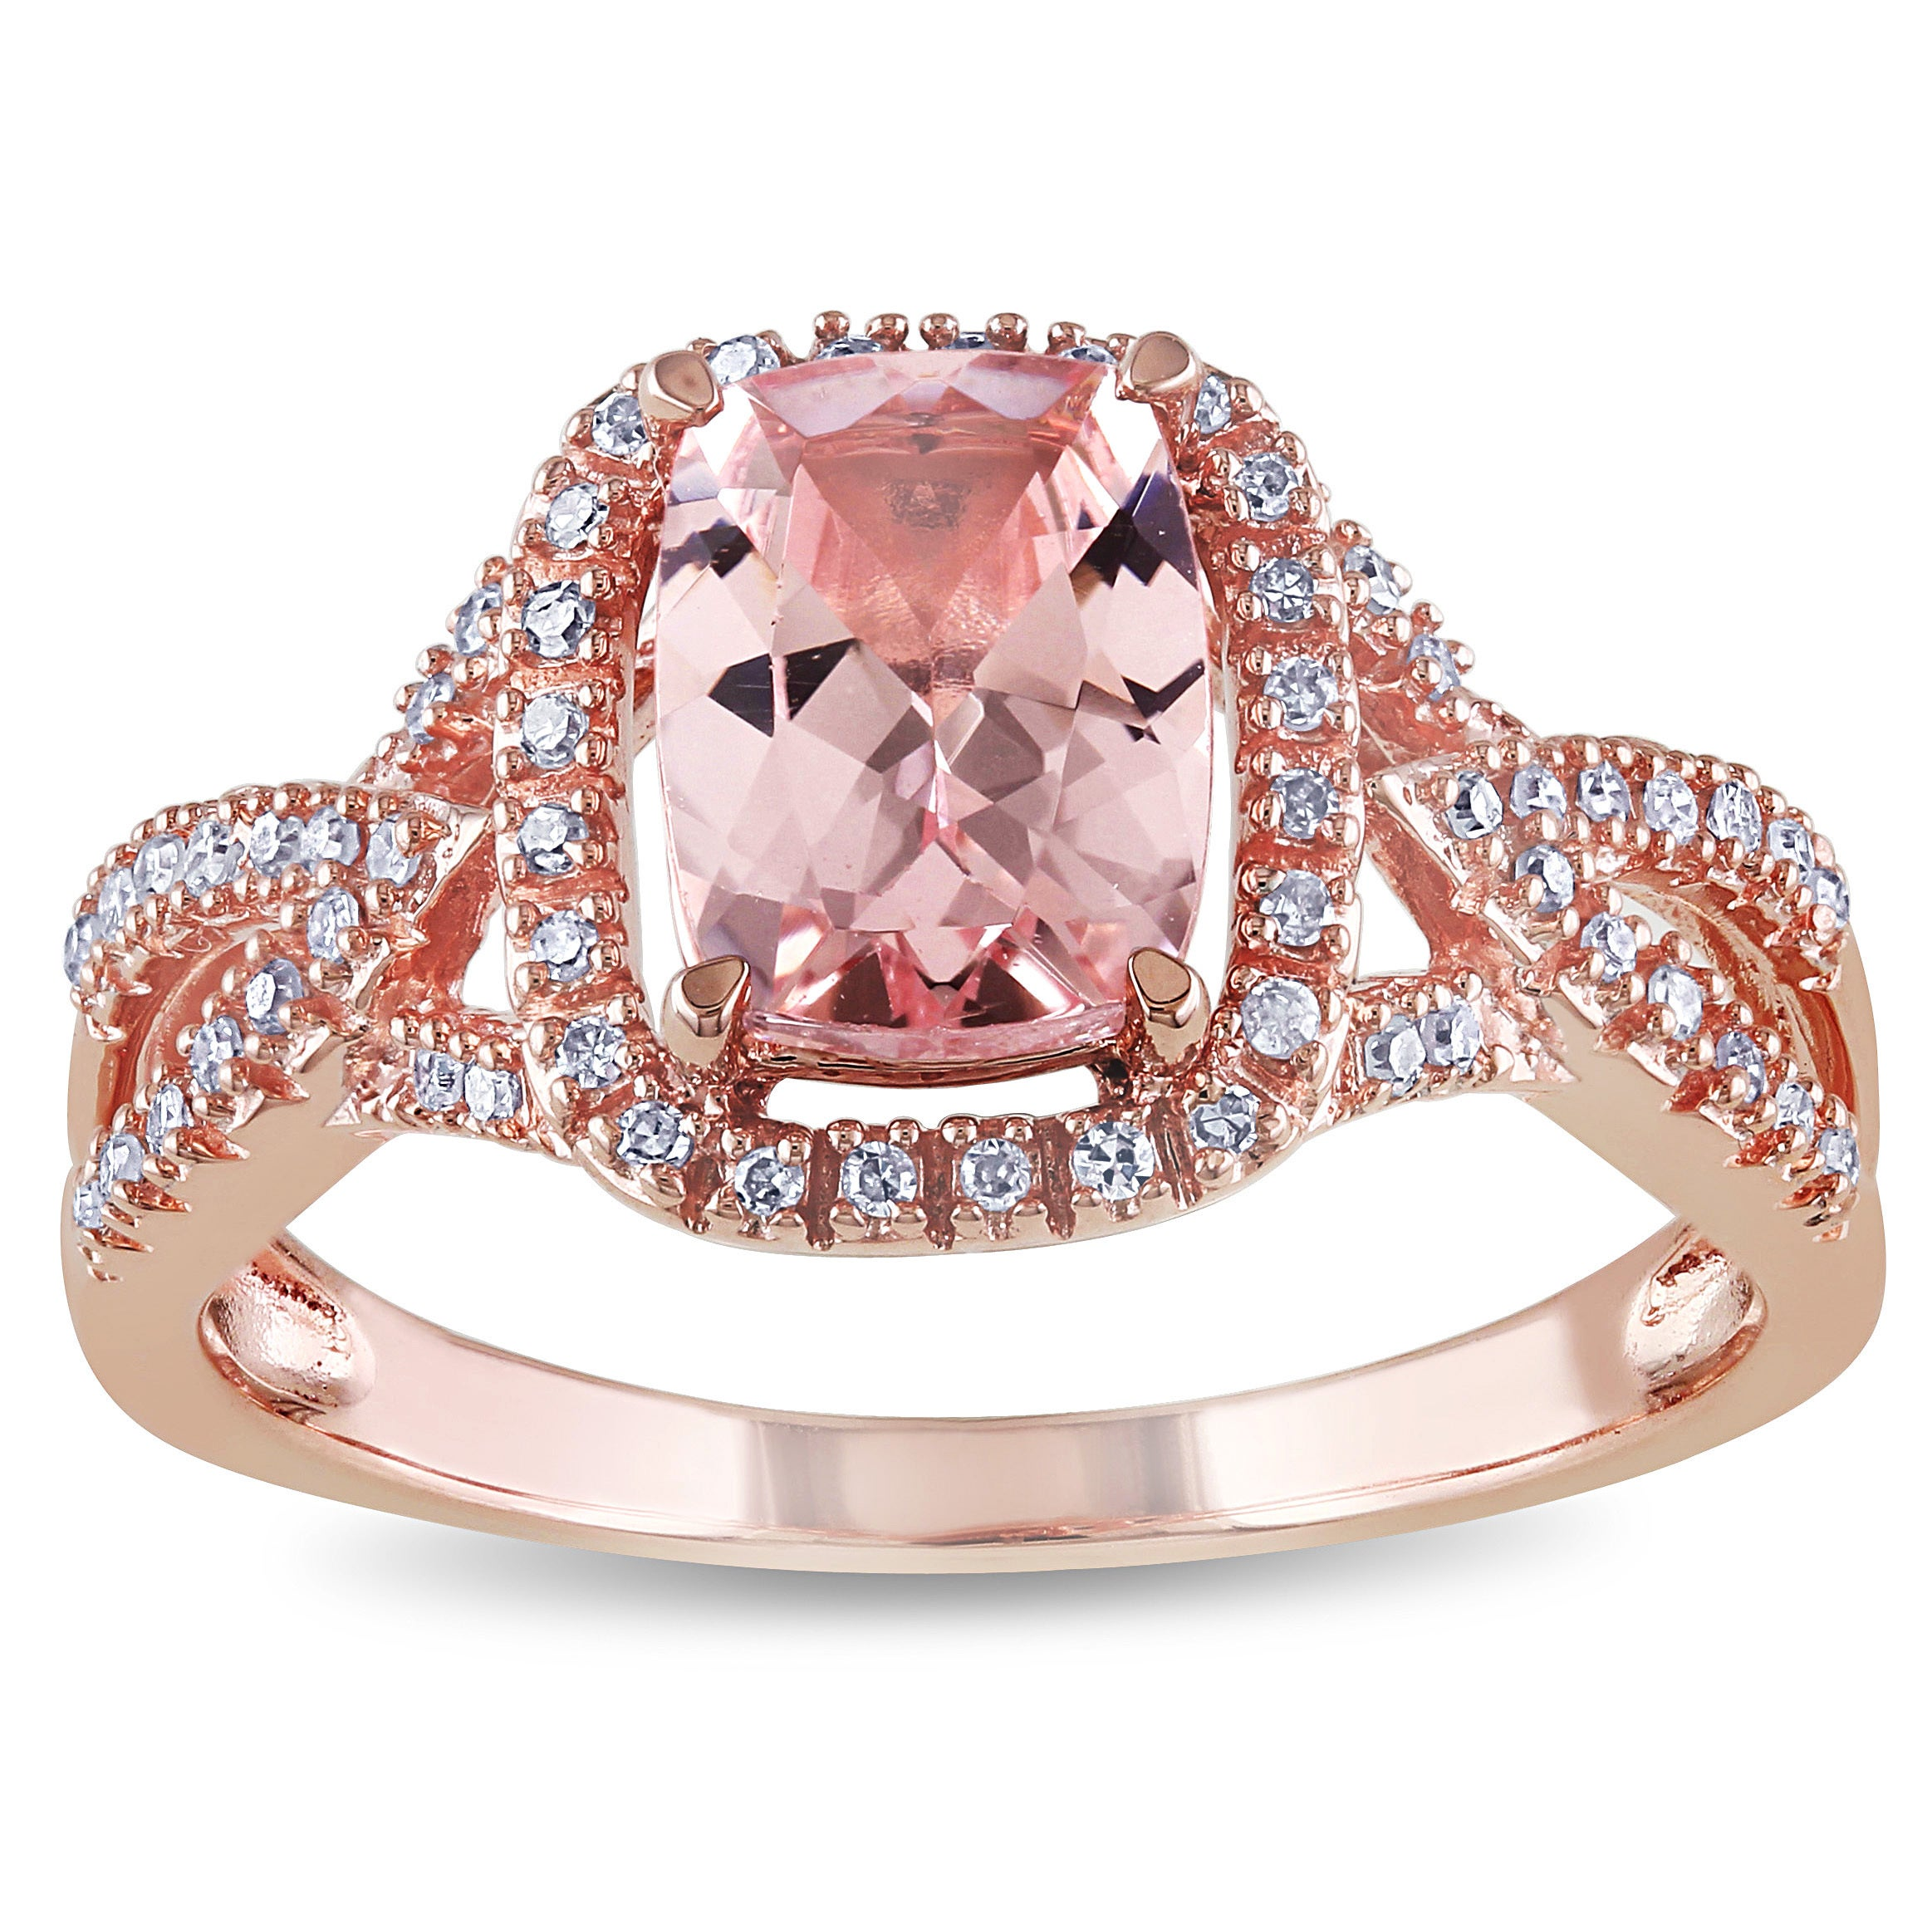 Shop Miadora Signature Collection 10k Rose Gold Cushion-Cut ...